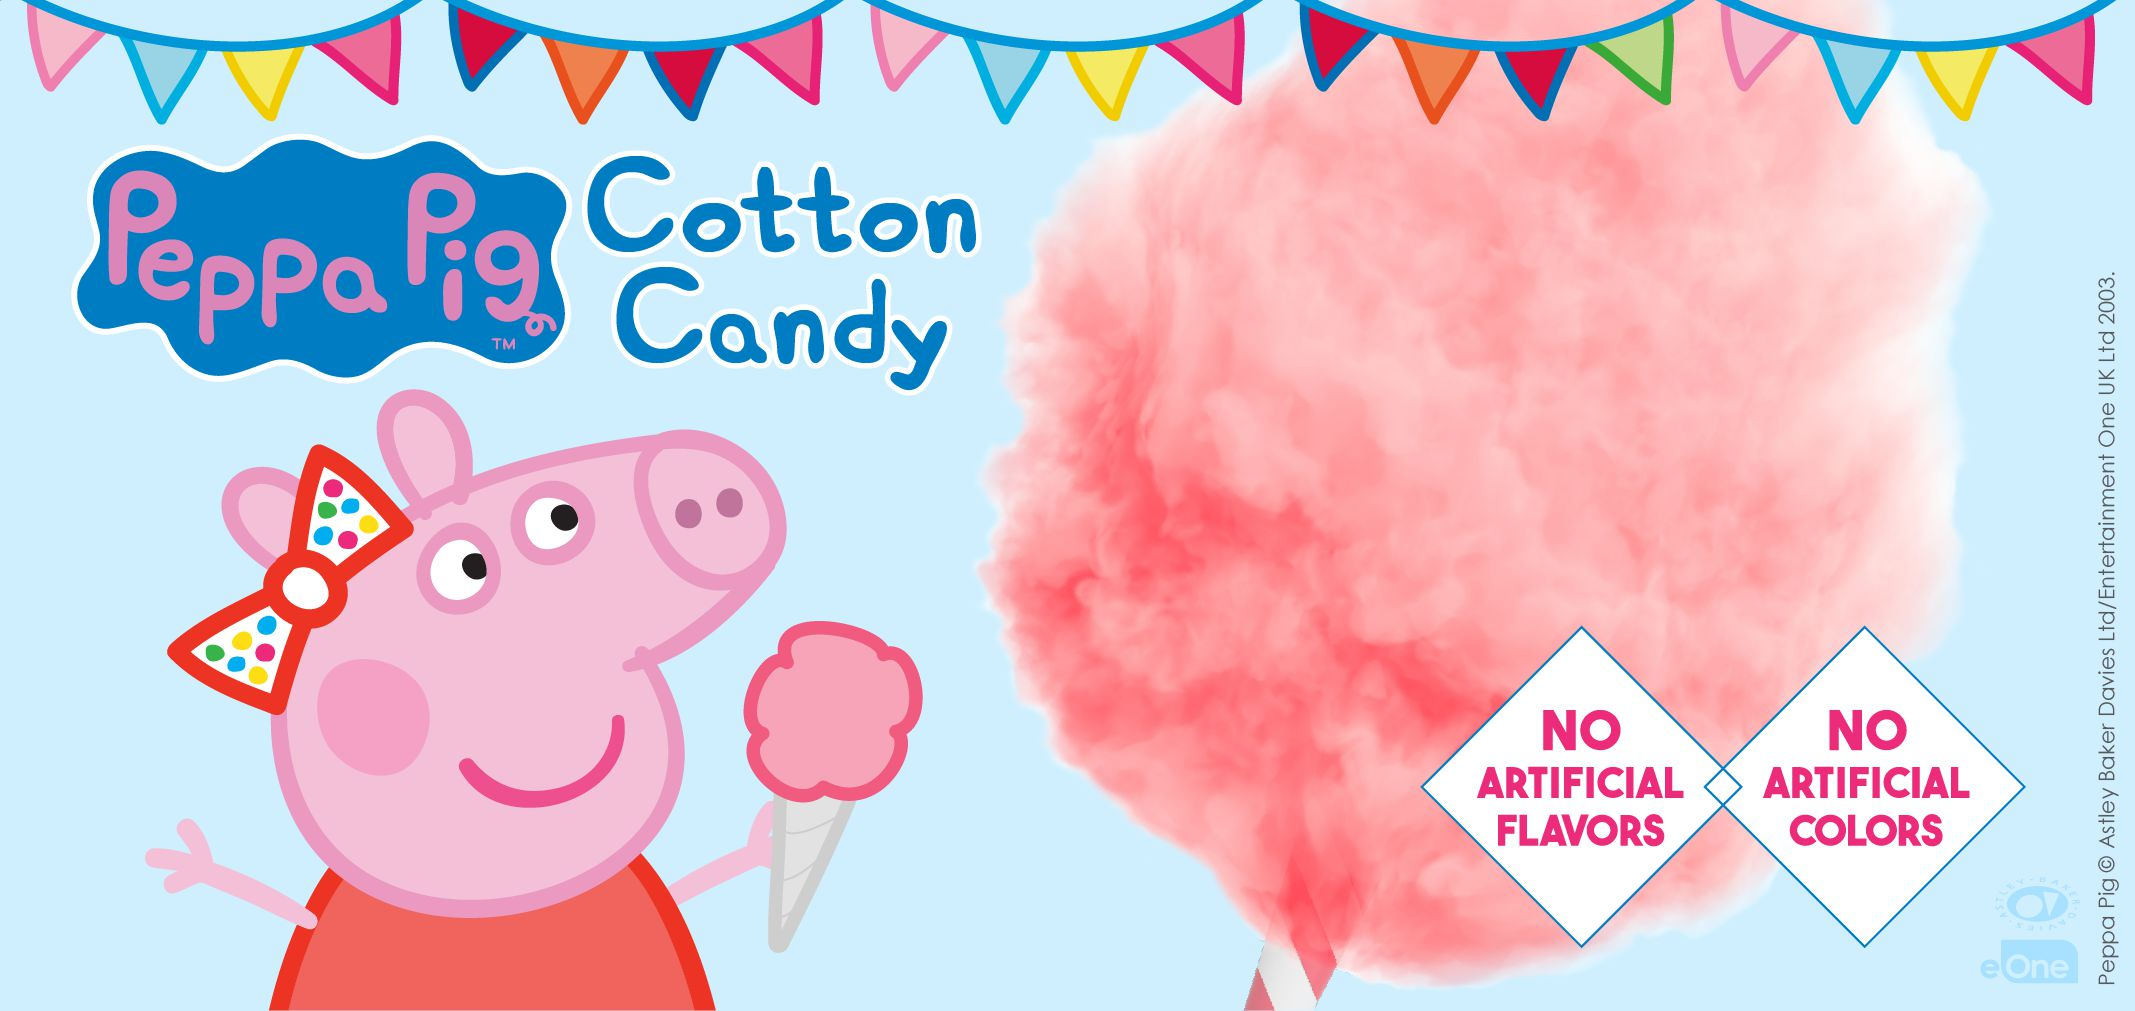 peppa pig's cotton candy label image